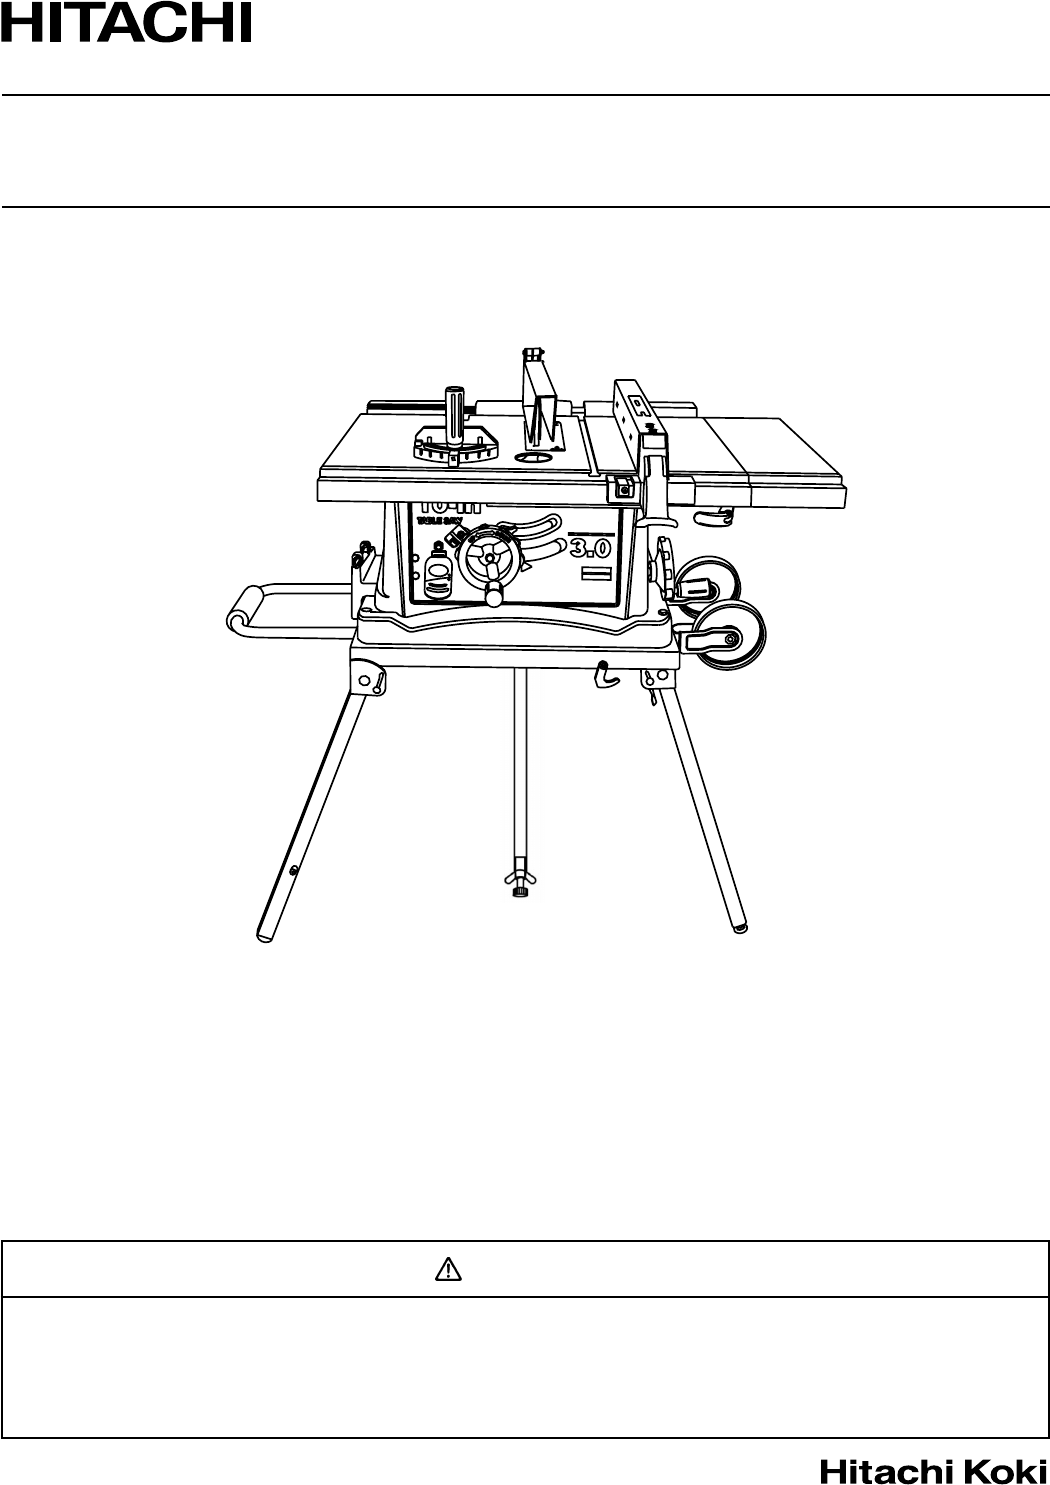 hitachi miter saw wiring diagram hitachi trim saw elsavadorla